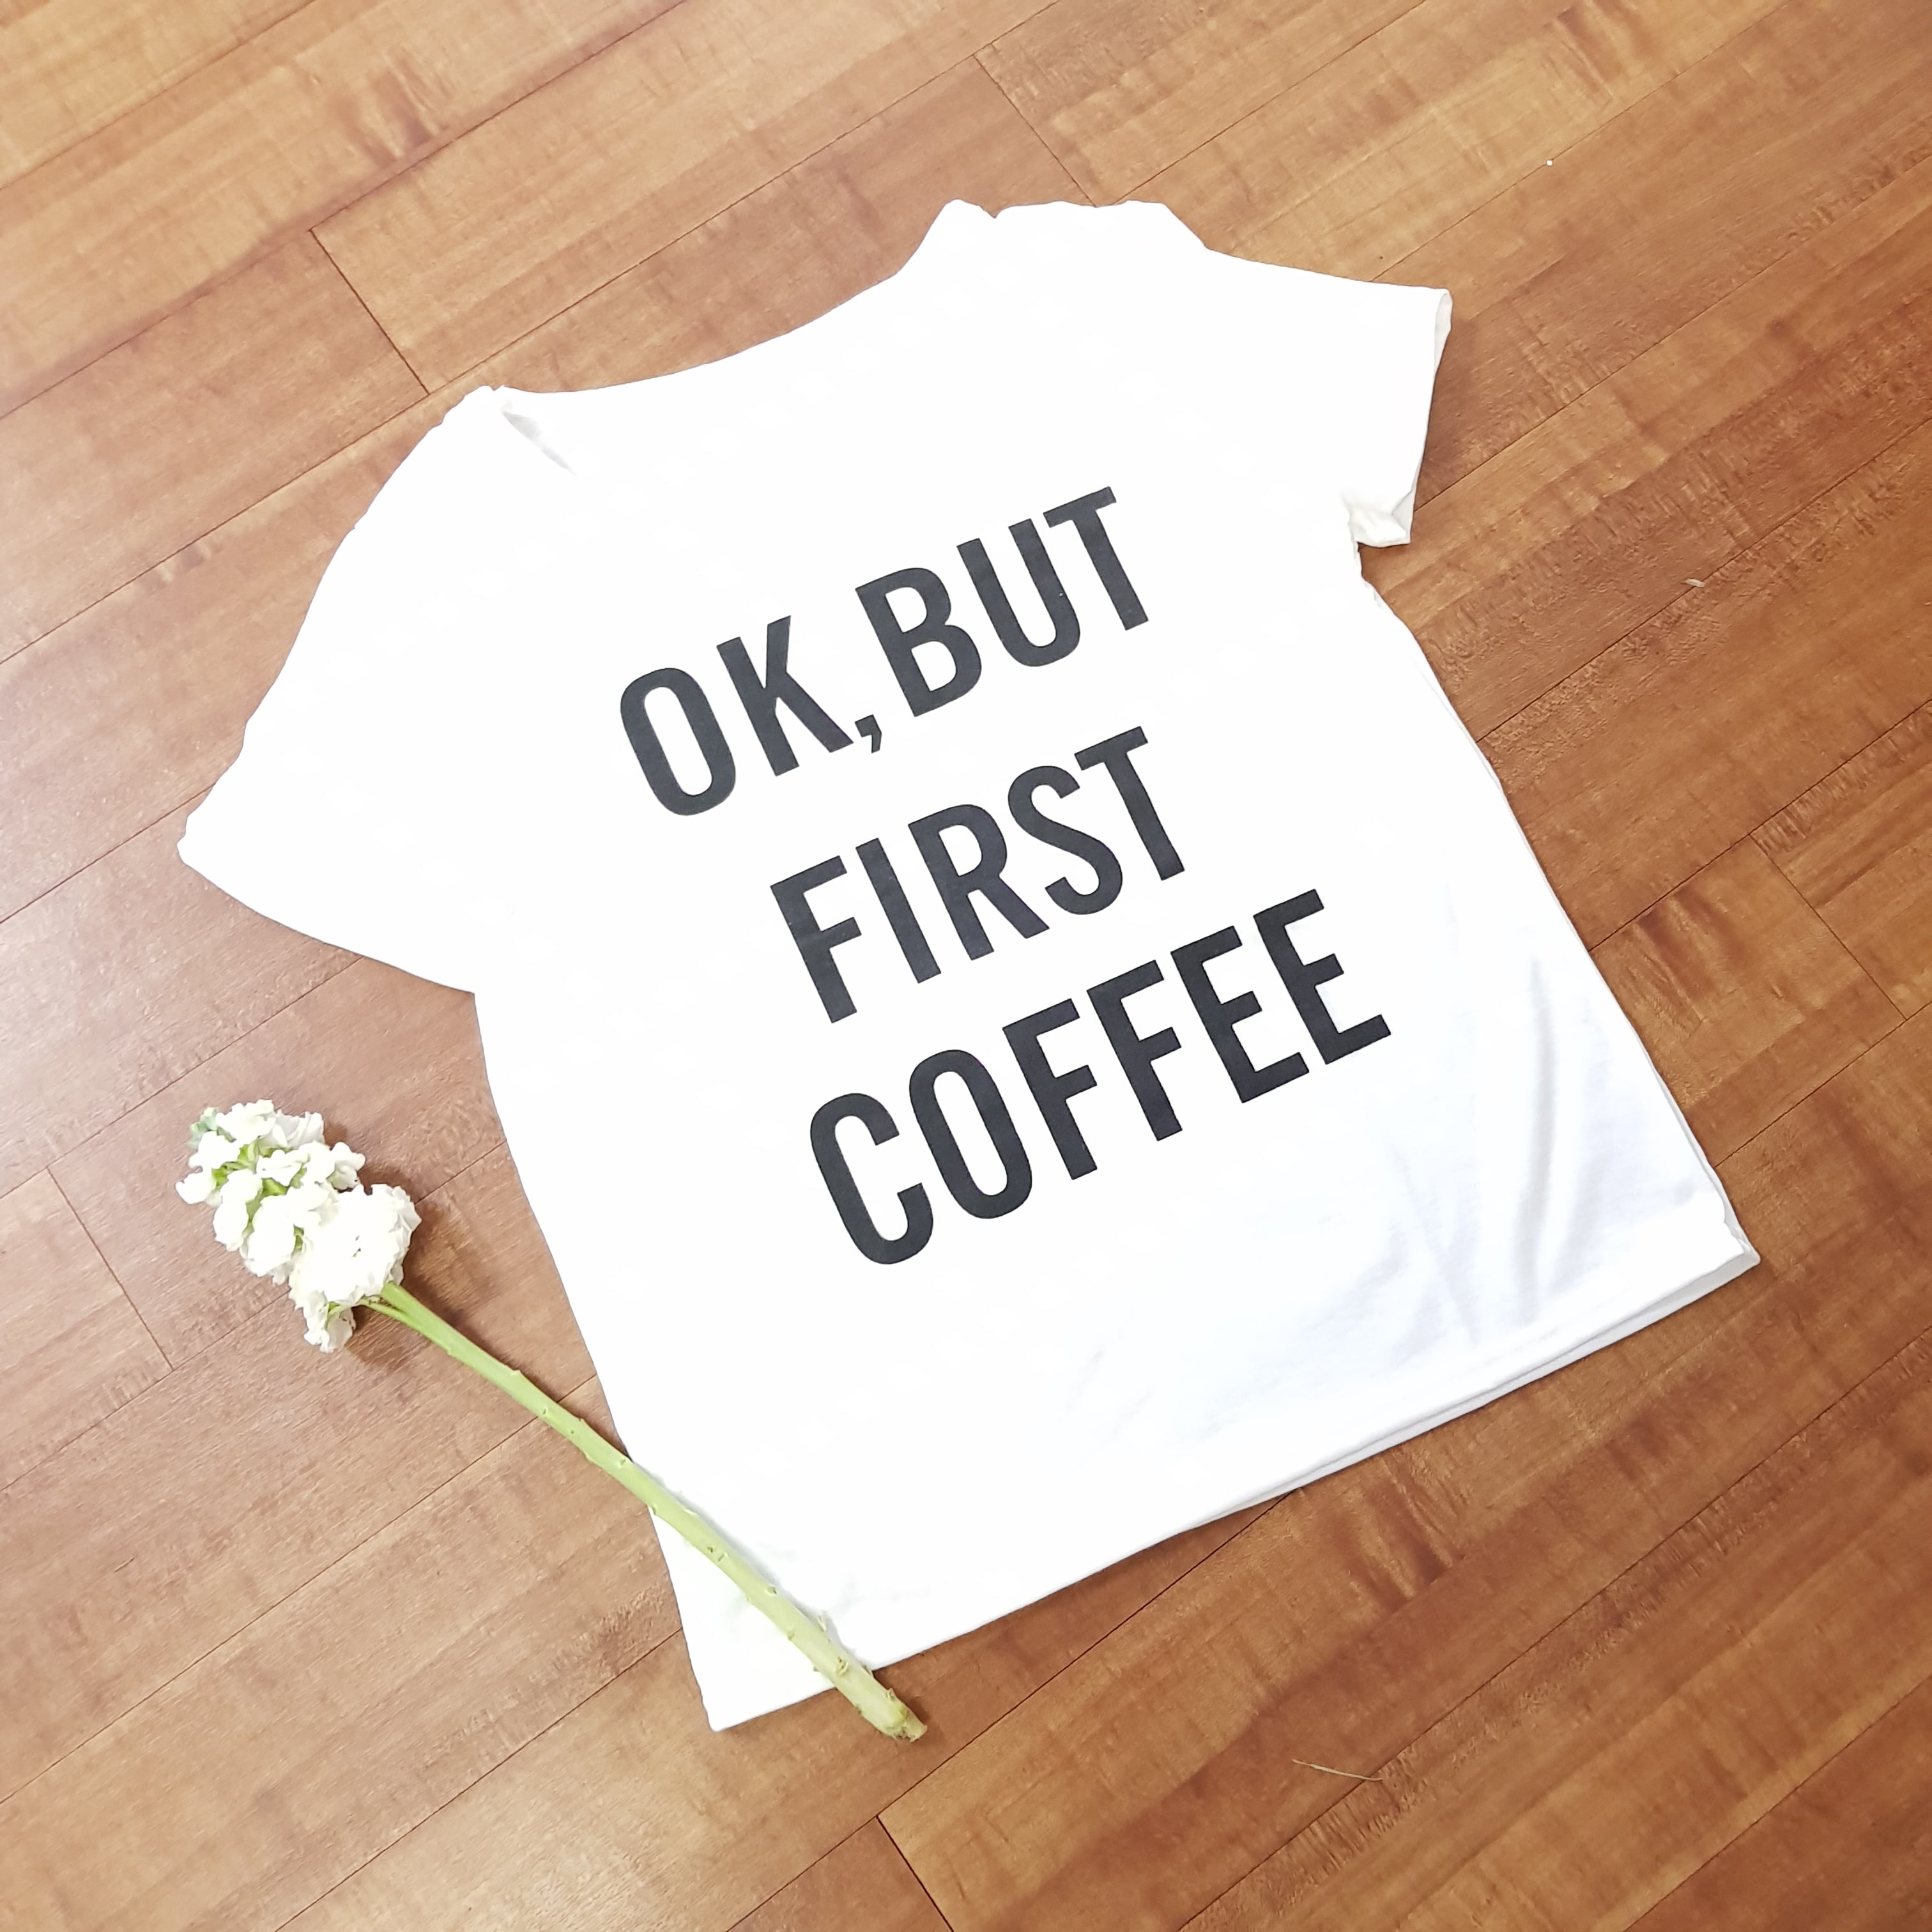 Okay But Coffee First T-Shirt